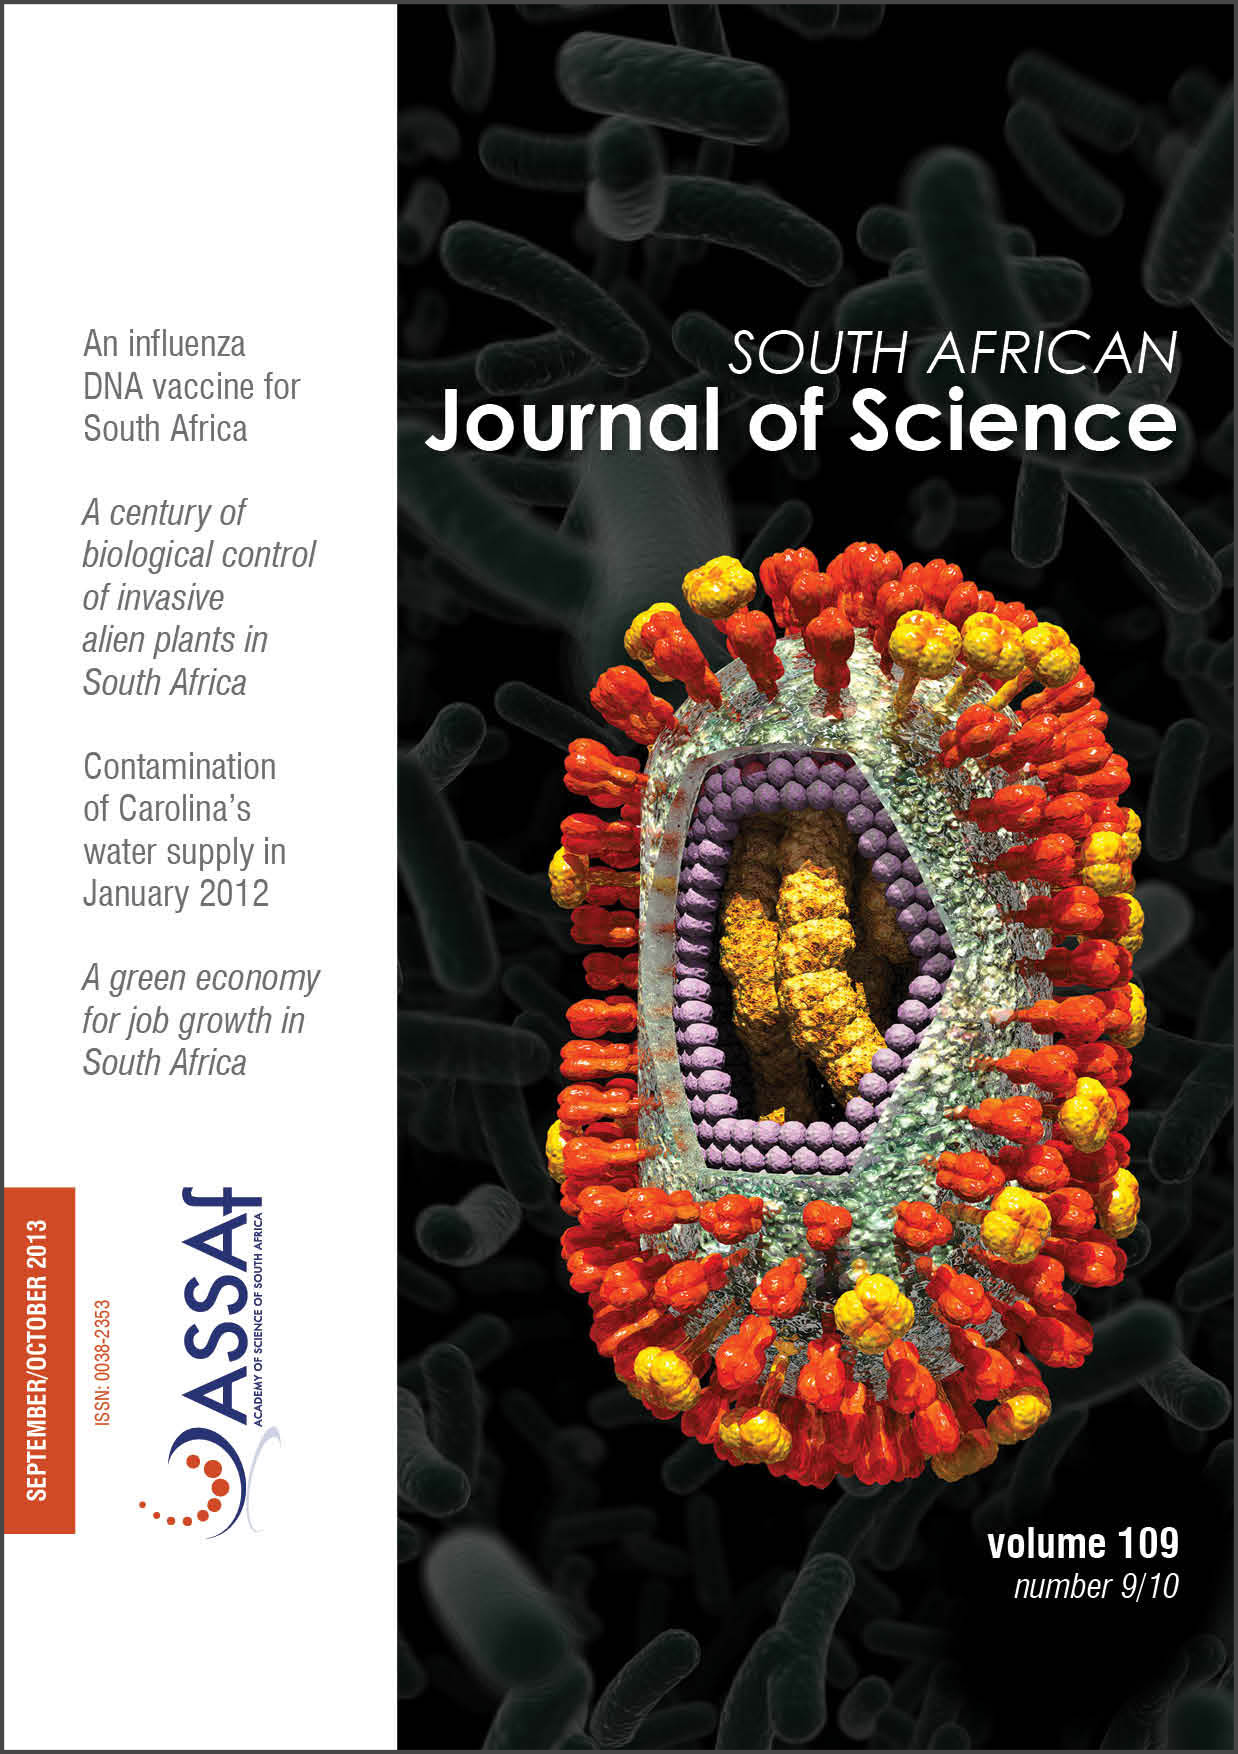 View Vol. 109 No. 9/10 (2013): South African Journal of Science